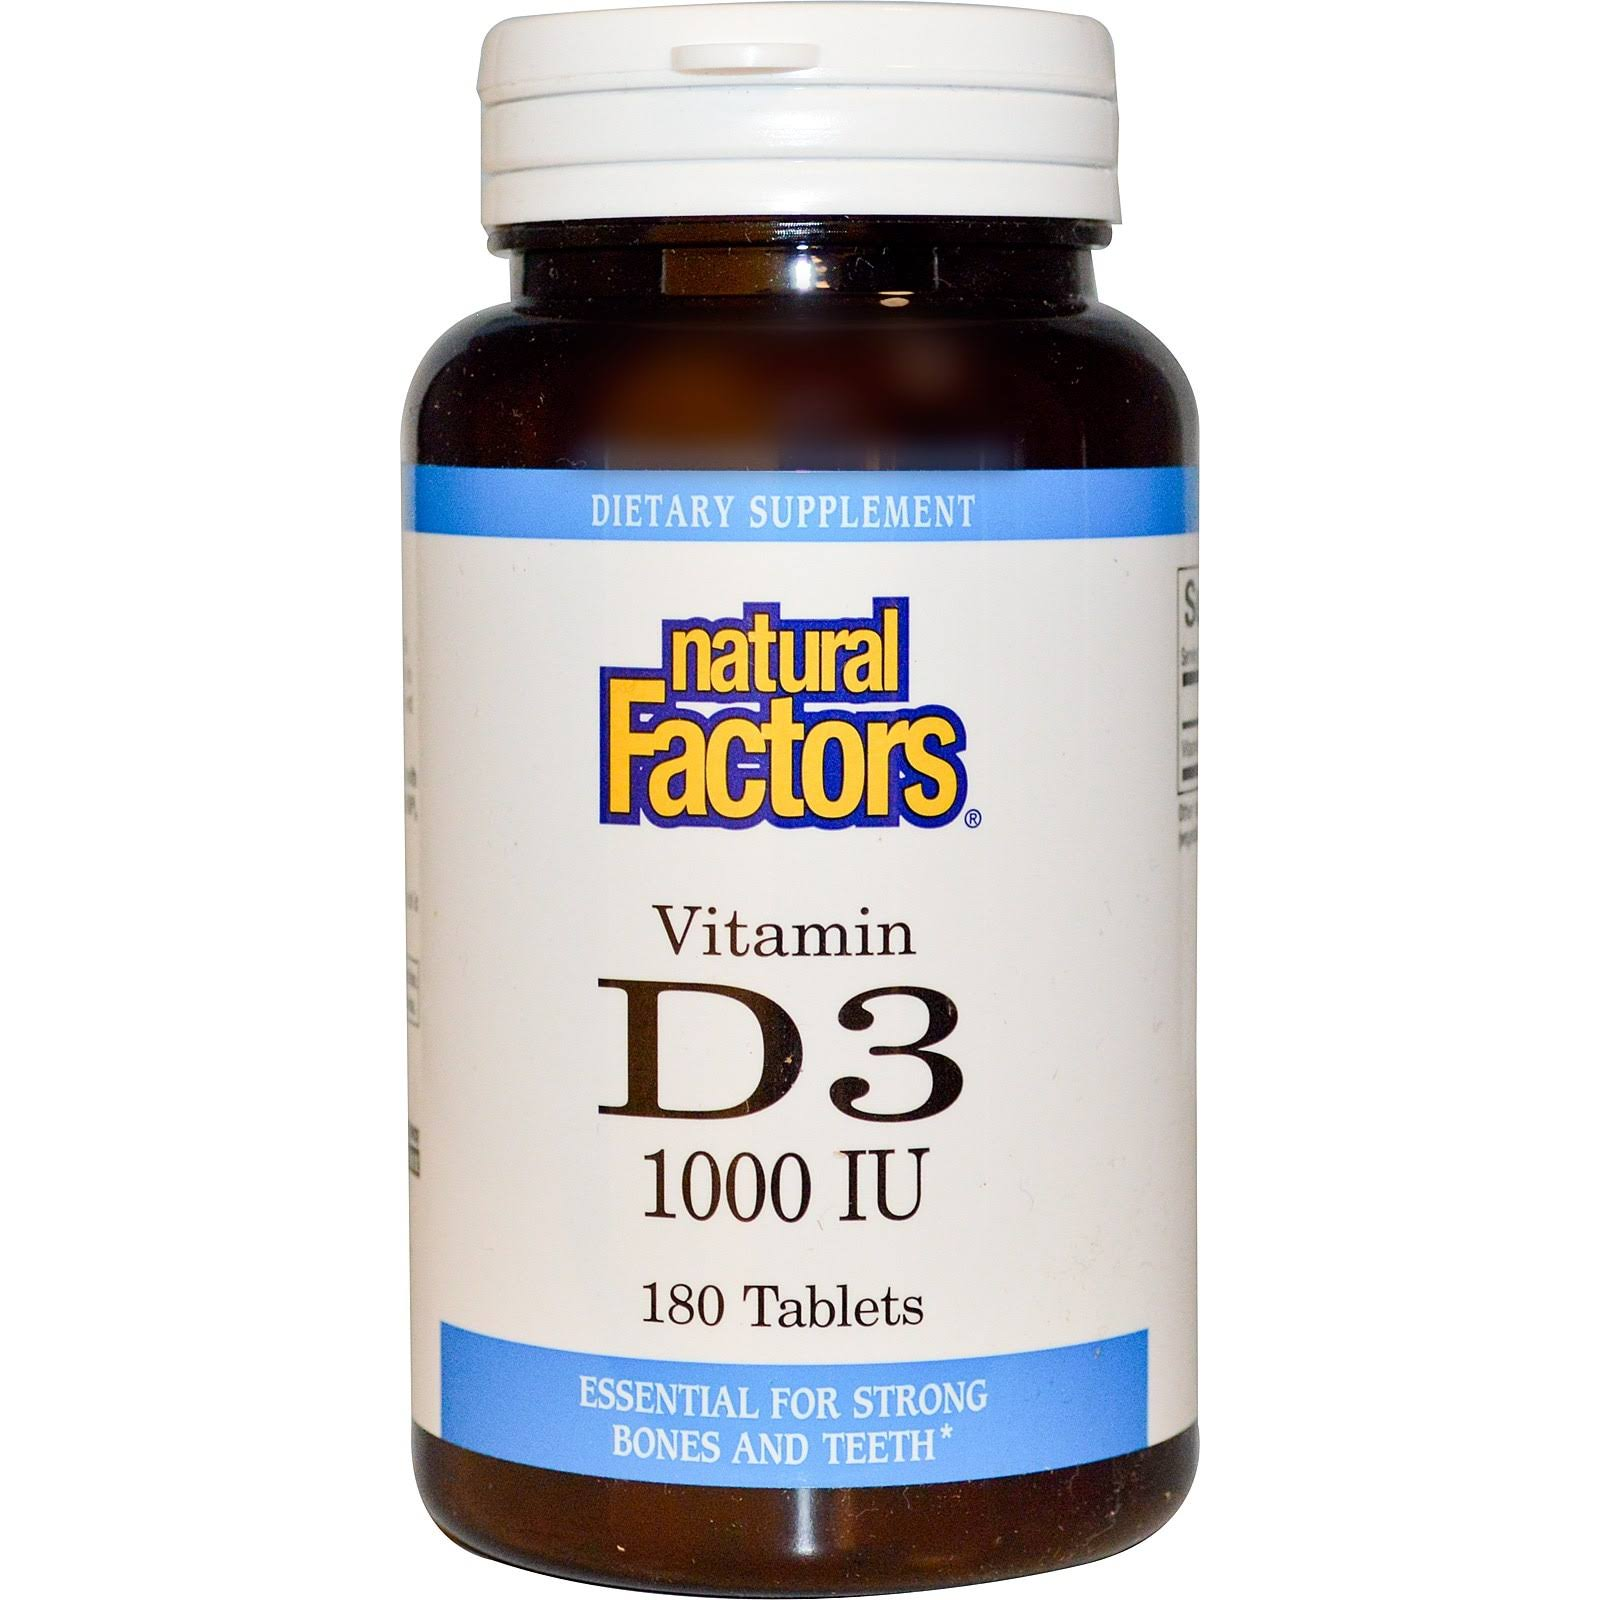 Natural Factors Vitamin D3 Supplement - 1000 IU, 180 Tablets